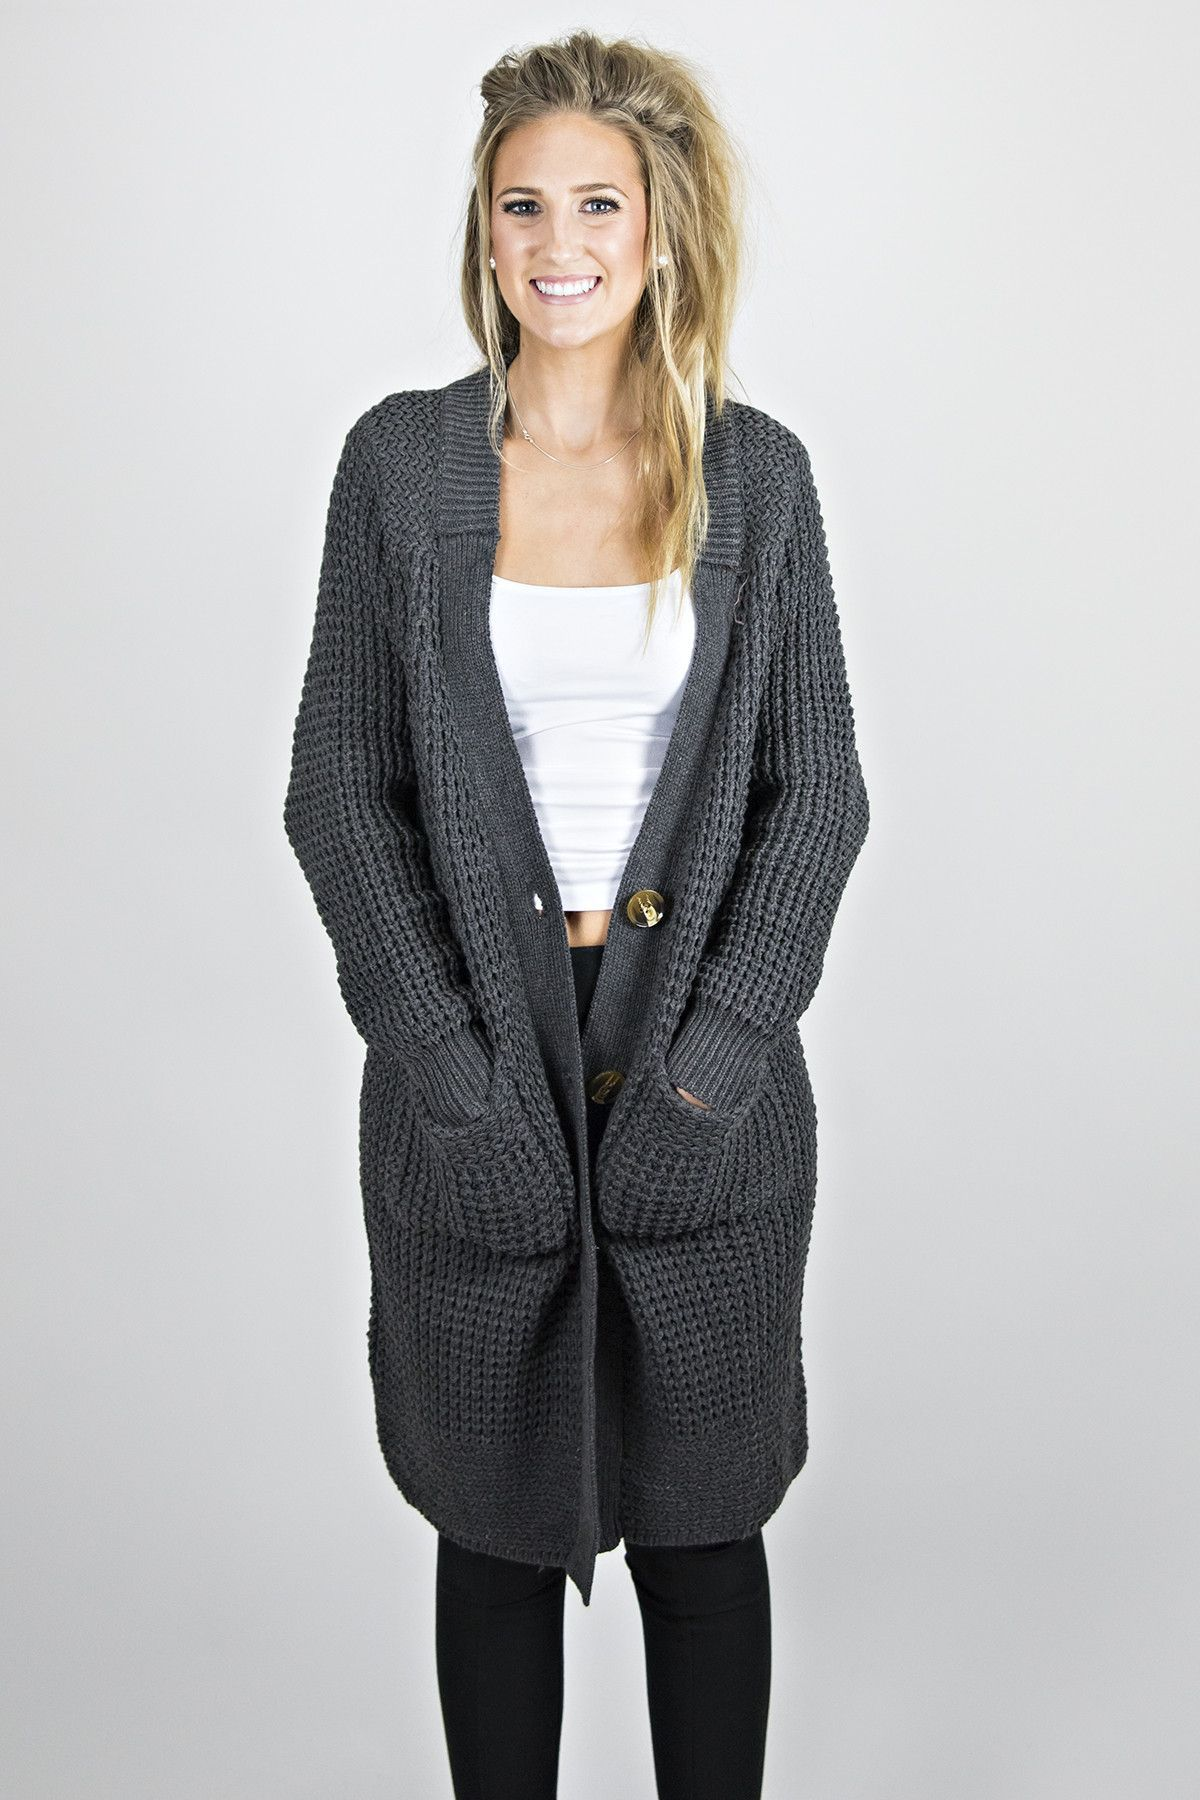 Wobbly Cardigan from Eccentrics Boutique This dark grey cardigan ...